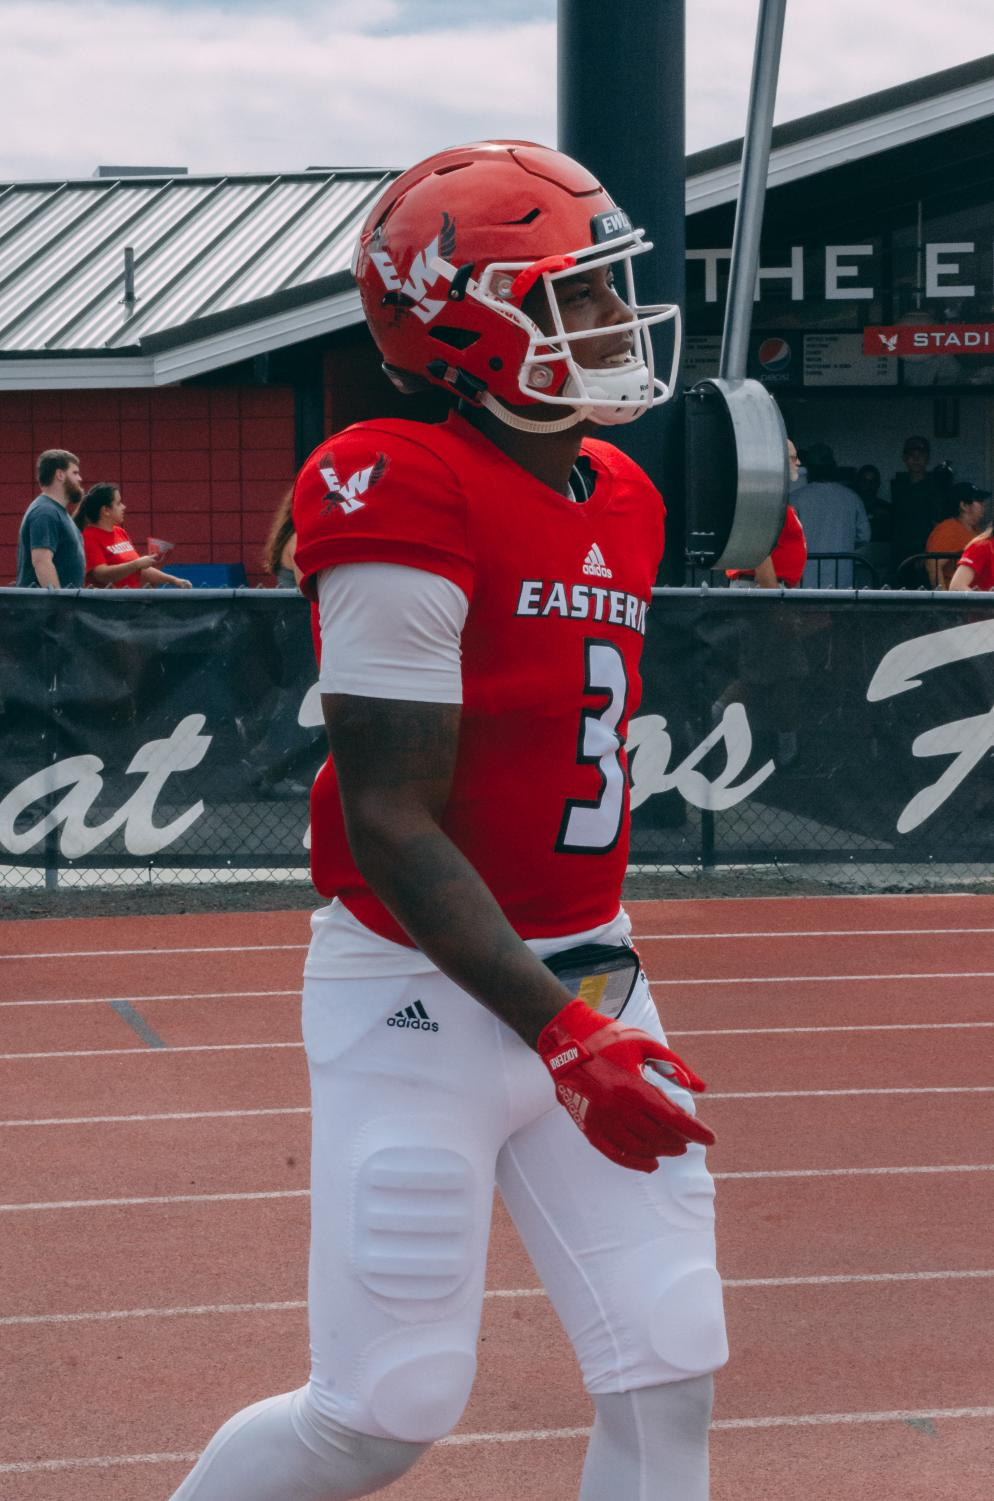 EWU junior quarterback Eric Barriere walks onto the field on Sept. 7. Barriere missed five offensive series in EWU's 48-27 loss at Sac State Saturday.